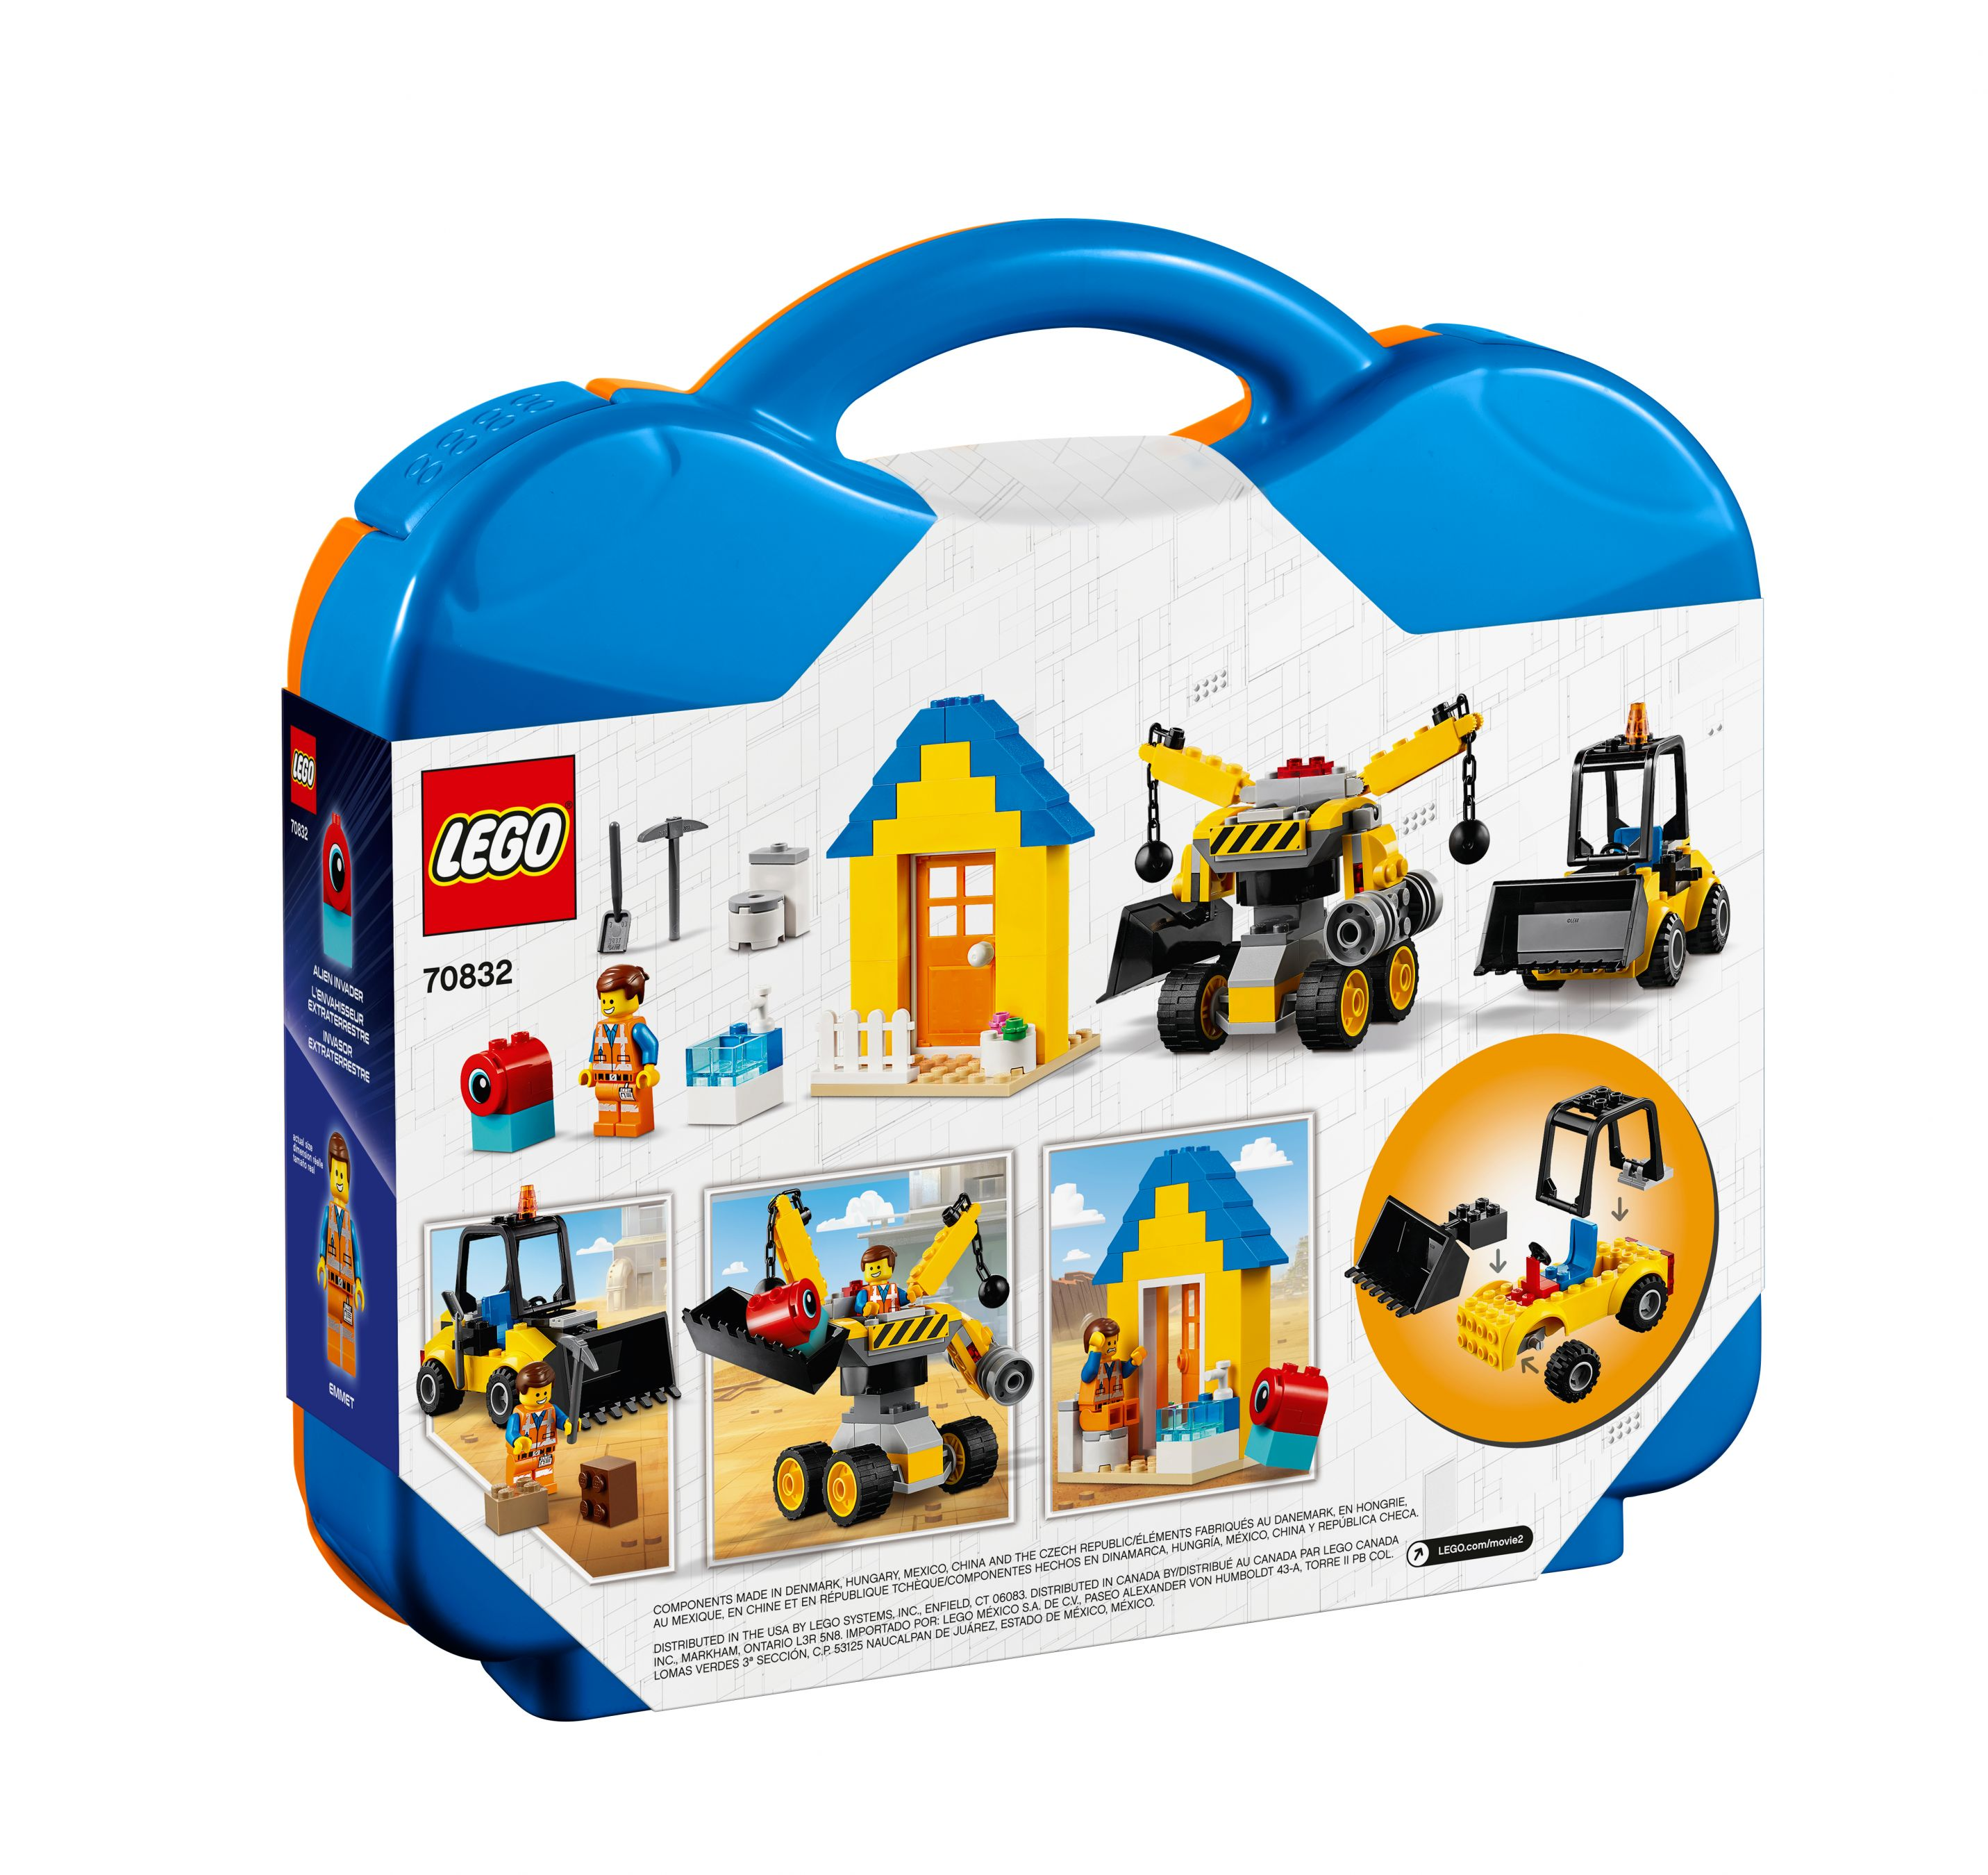 LEGO The LEGO Movie 2 70832 Emmets Baukoffer! LEGO_70832_alt2.jpg